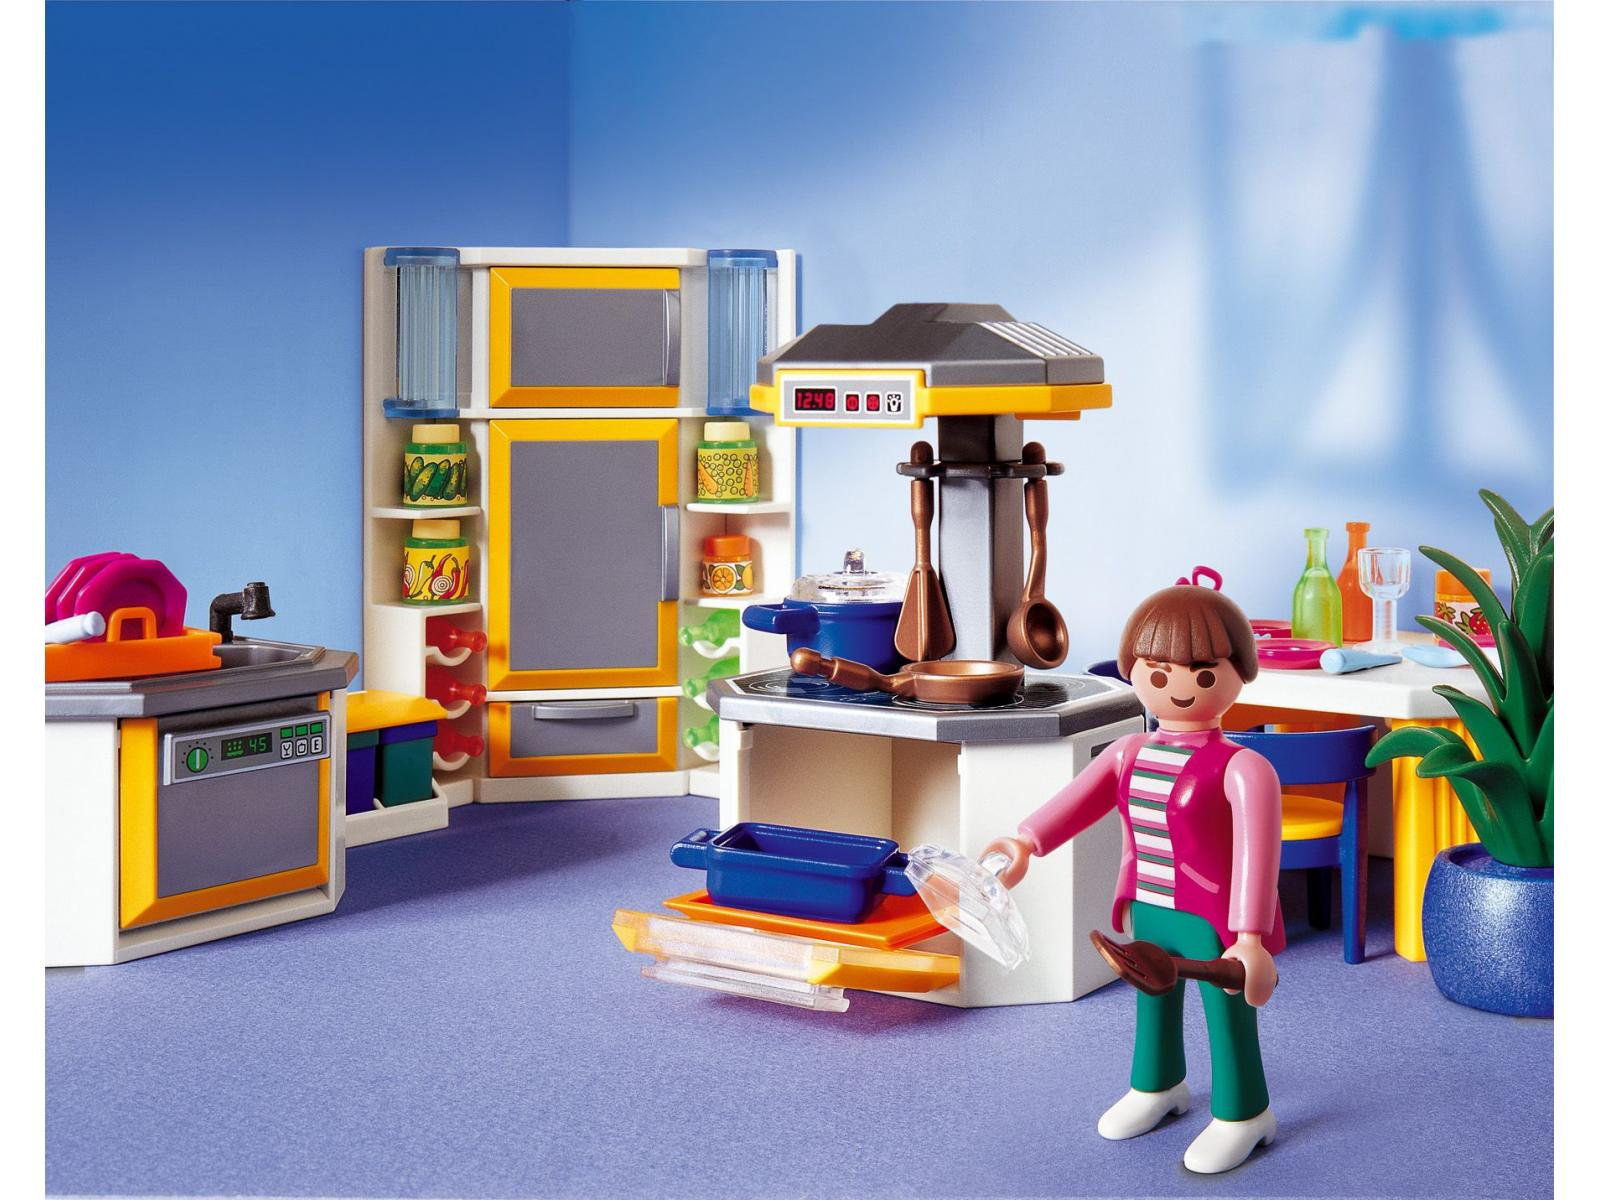 Salon Villa Moderne Play Mobil : Villa Moderne Playmobil Pictures to ...